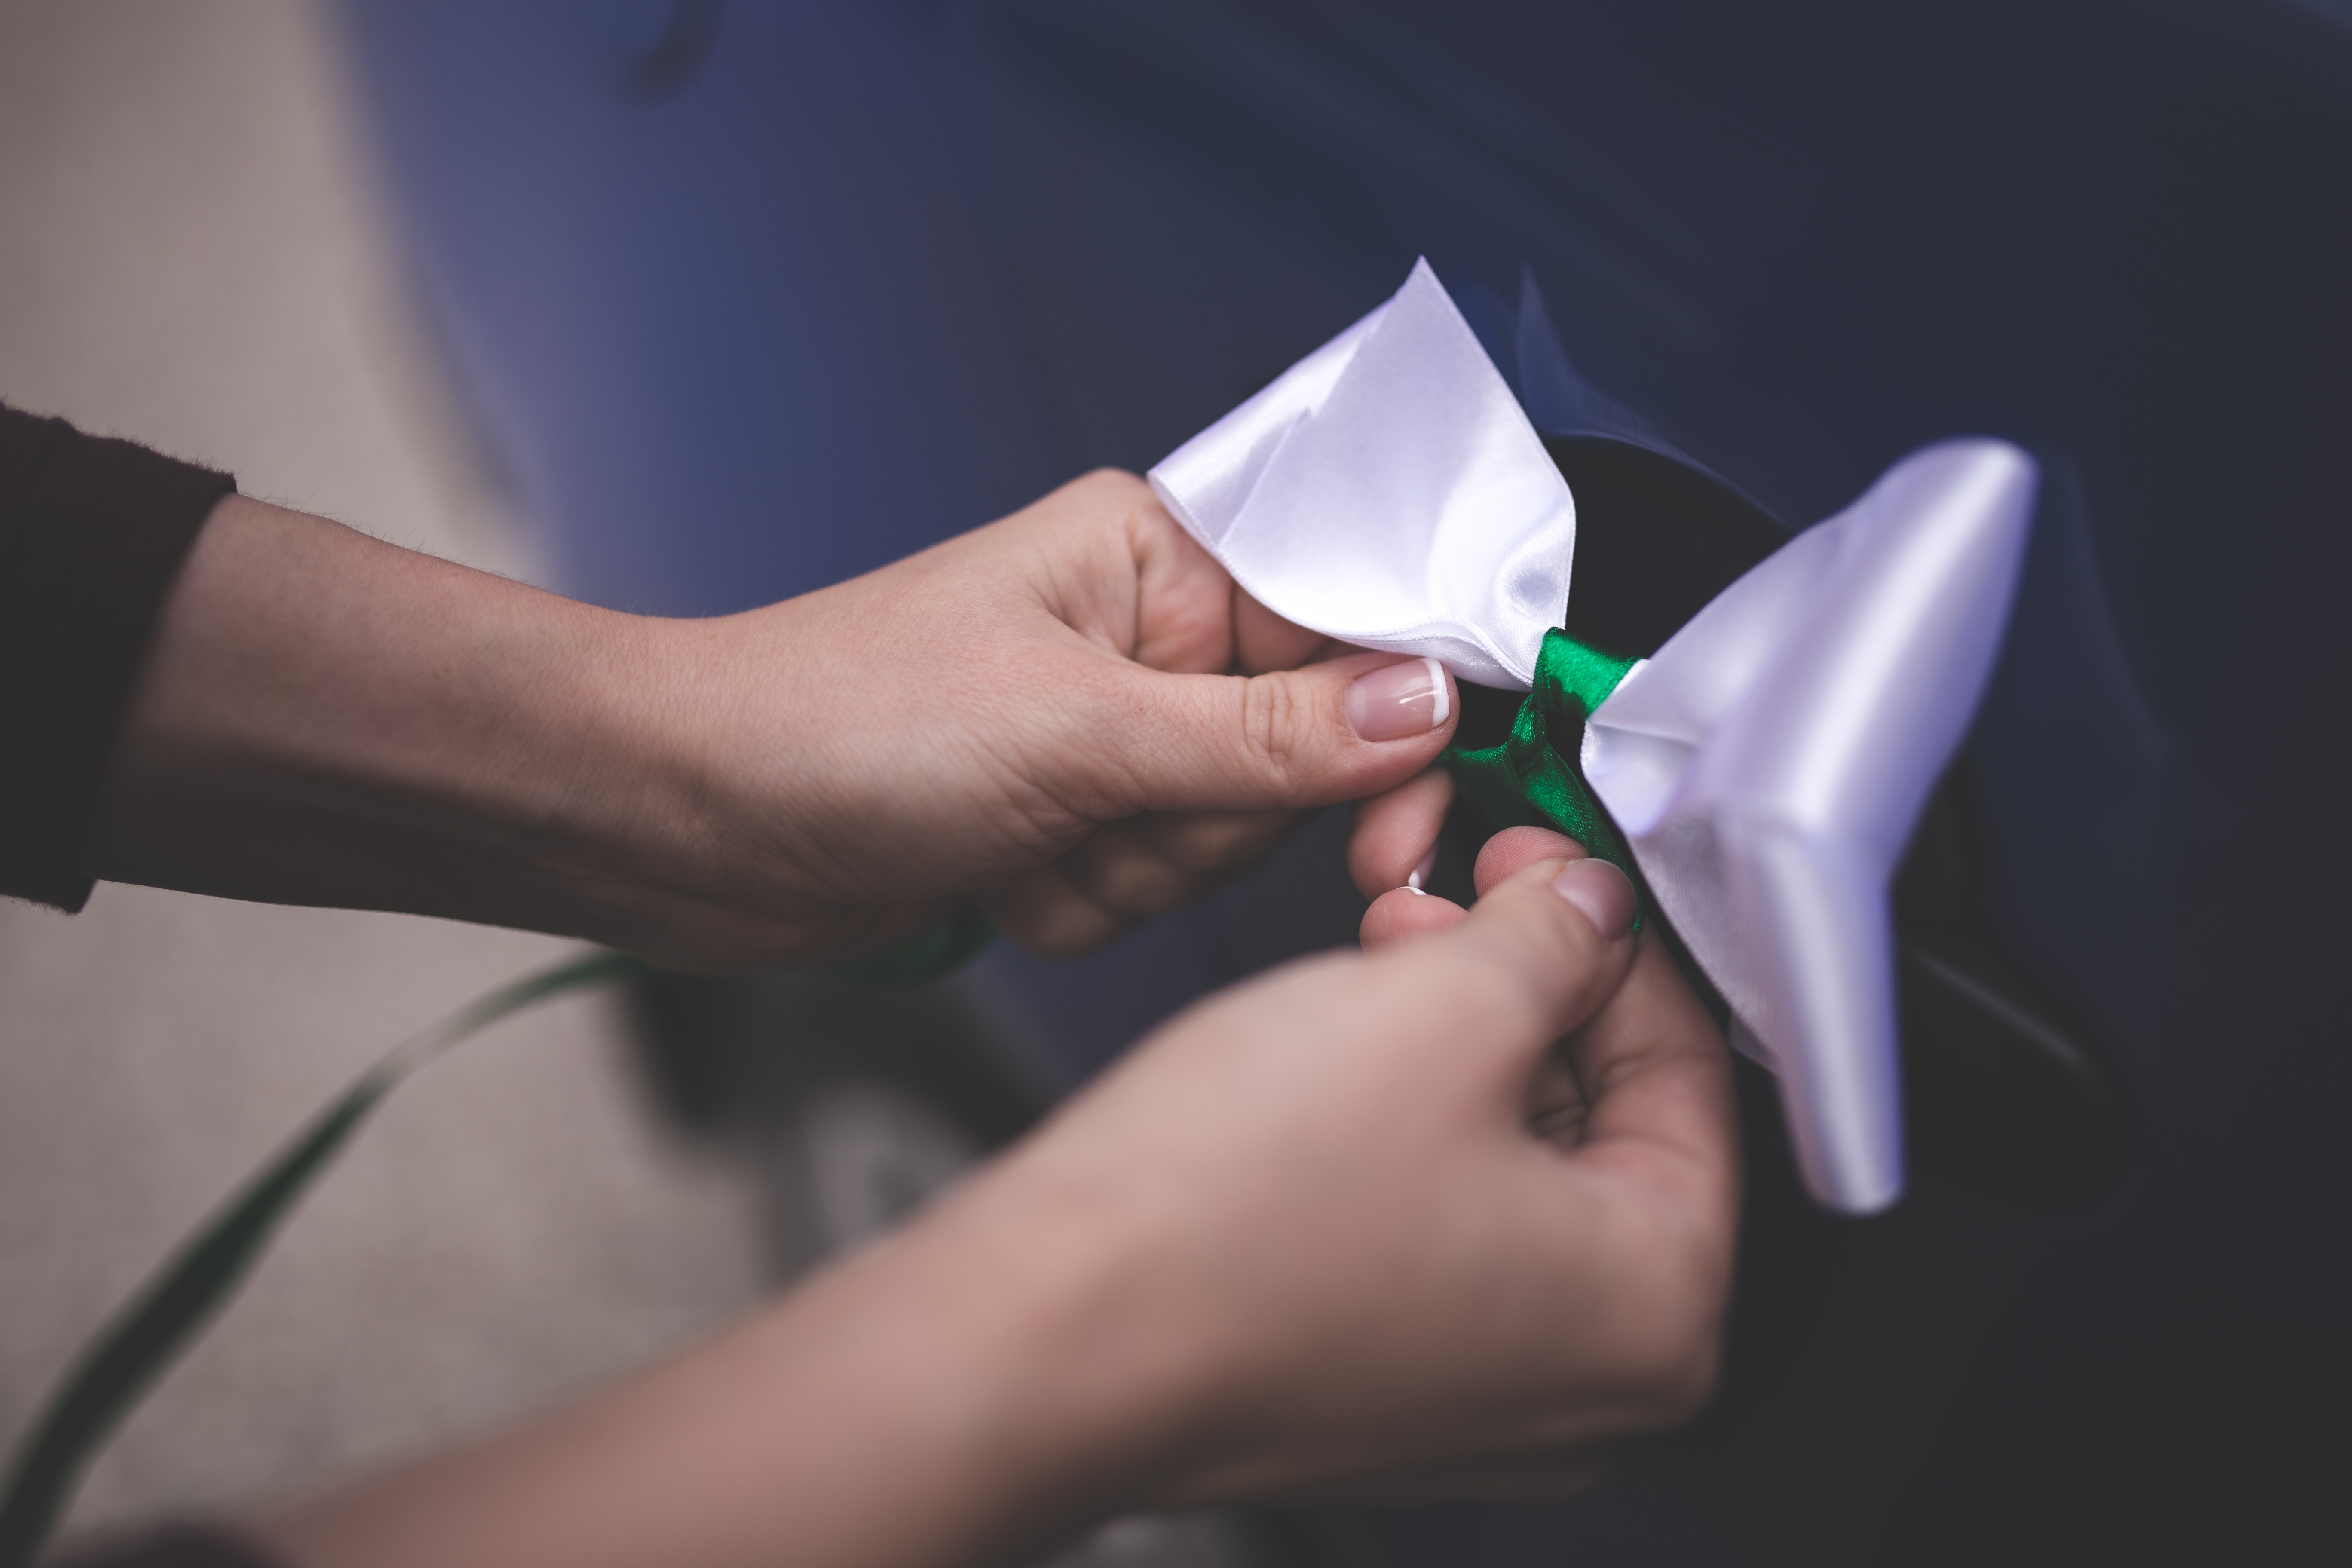 Woman tying a white bow, Technology, People, Medicine, Man, HQ Photo